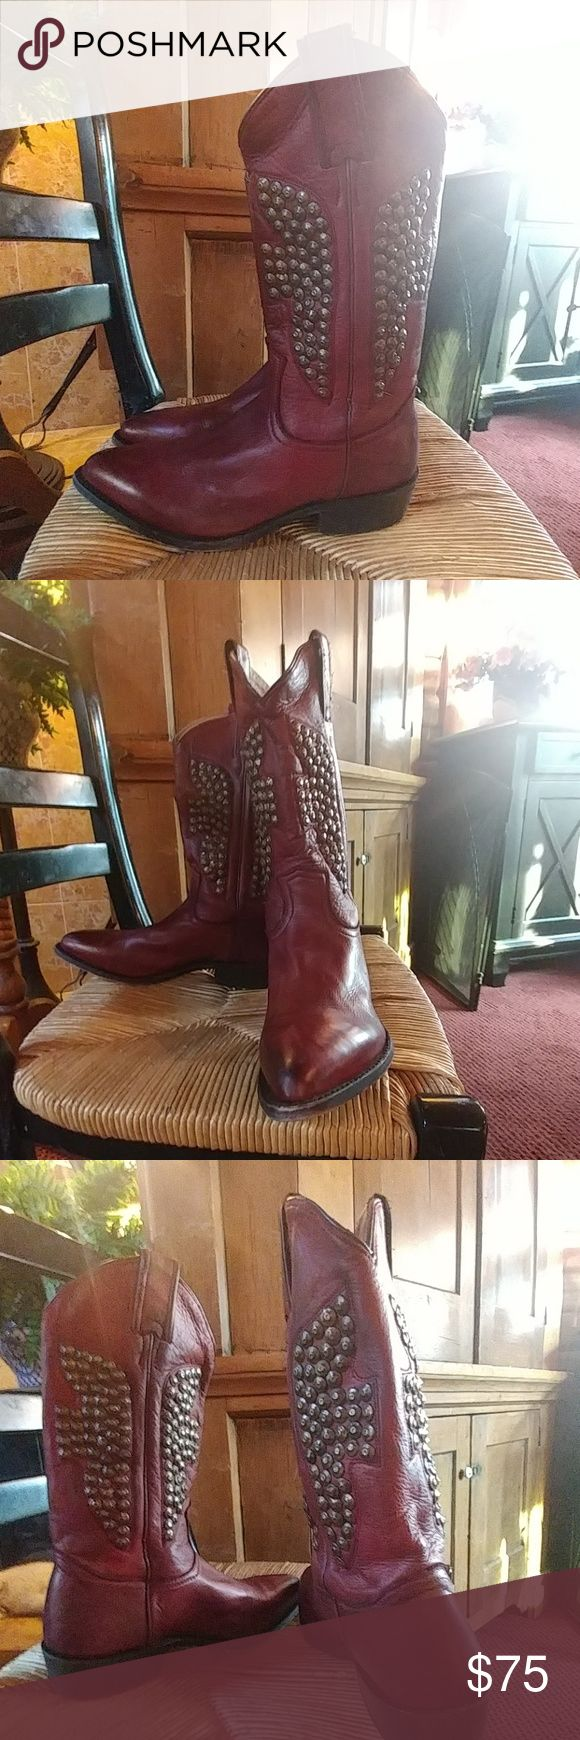 Fry boots Dark red cowboy boot, brand new, worn maybe 2x, super soft leather, comfortable just not my style Frye Shoes Ankle Boots & Booties